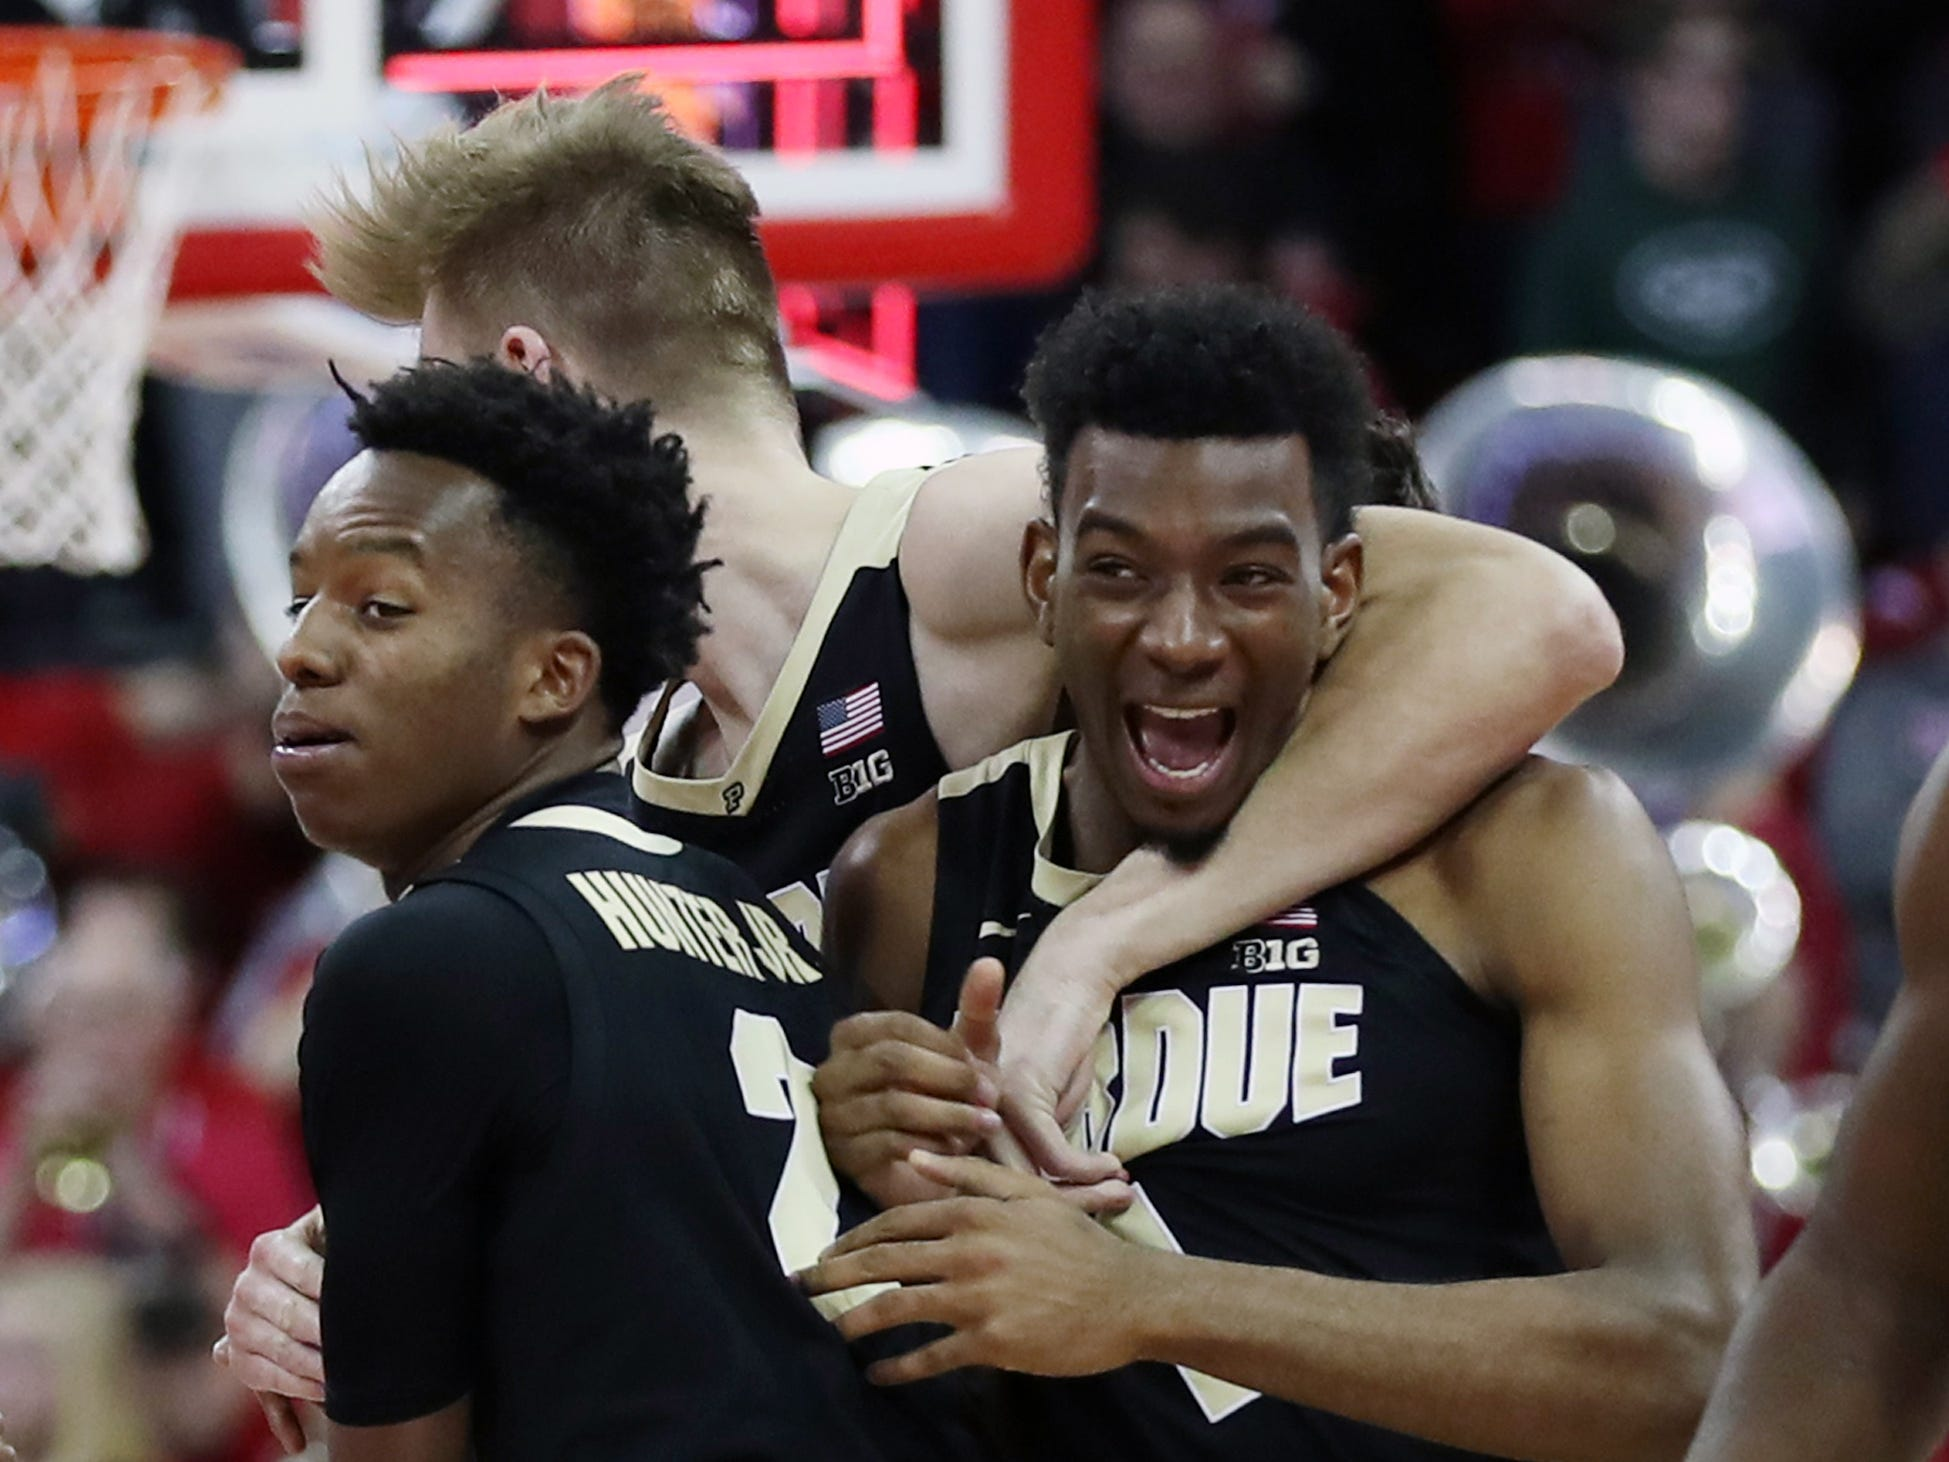 Purdue Boilermakers players celebrate after beating the Wisconsin Badgers in overtime on Friday night at the Kohl Center.